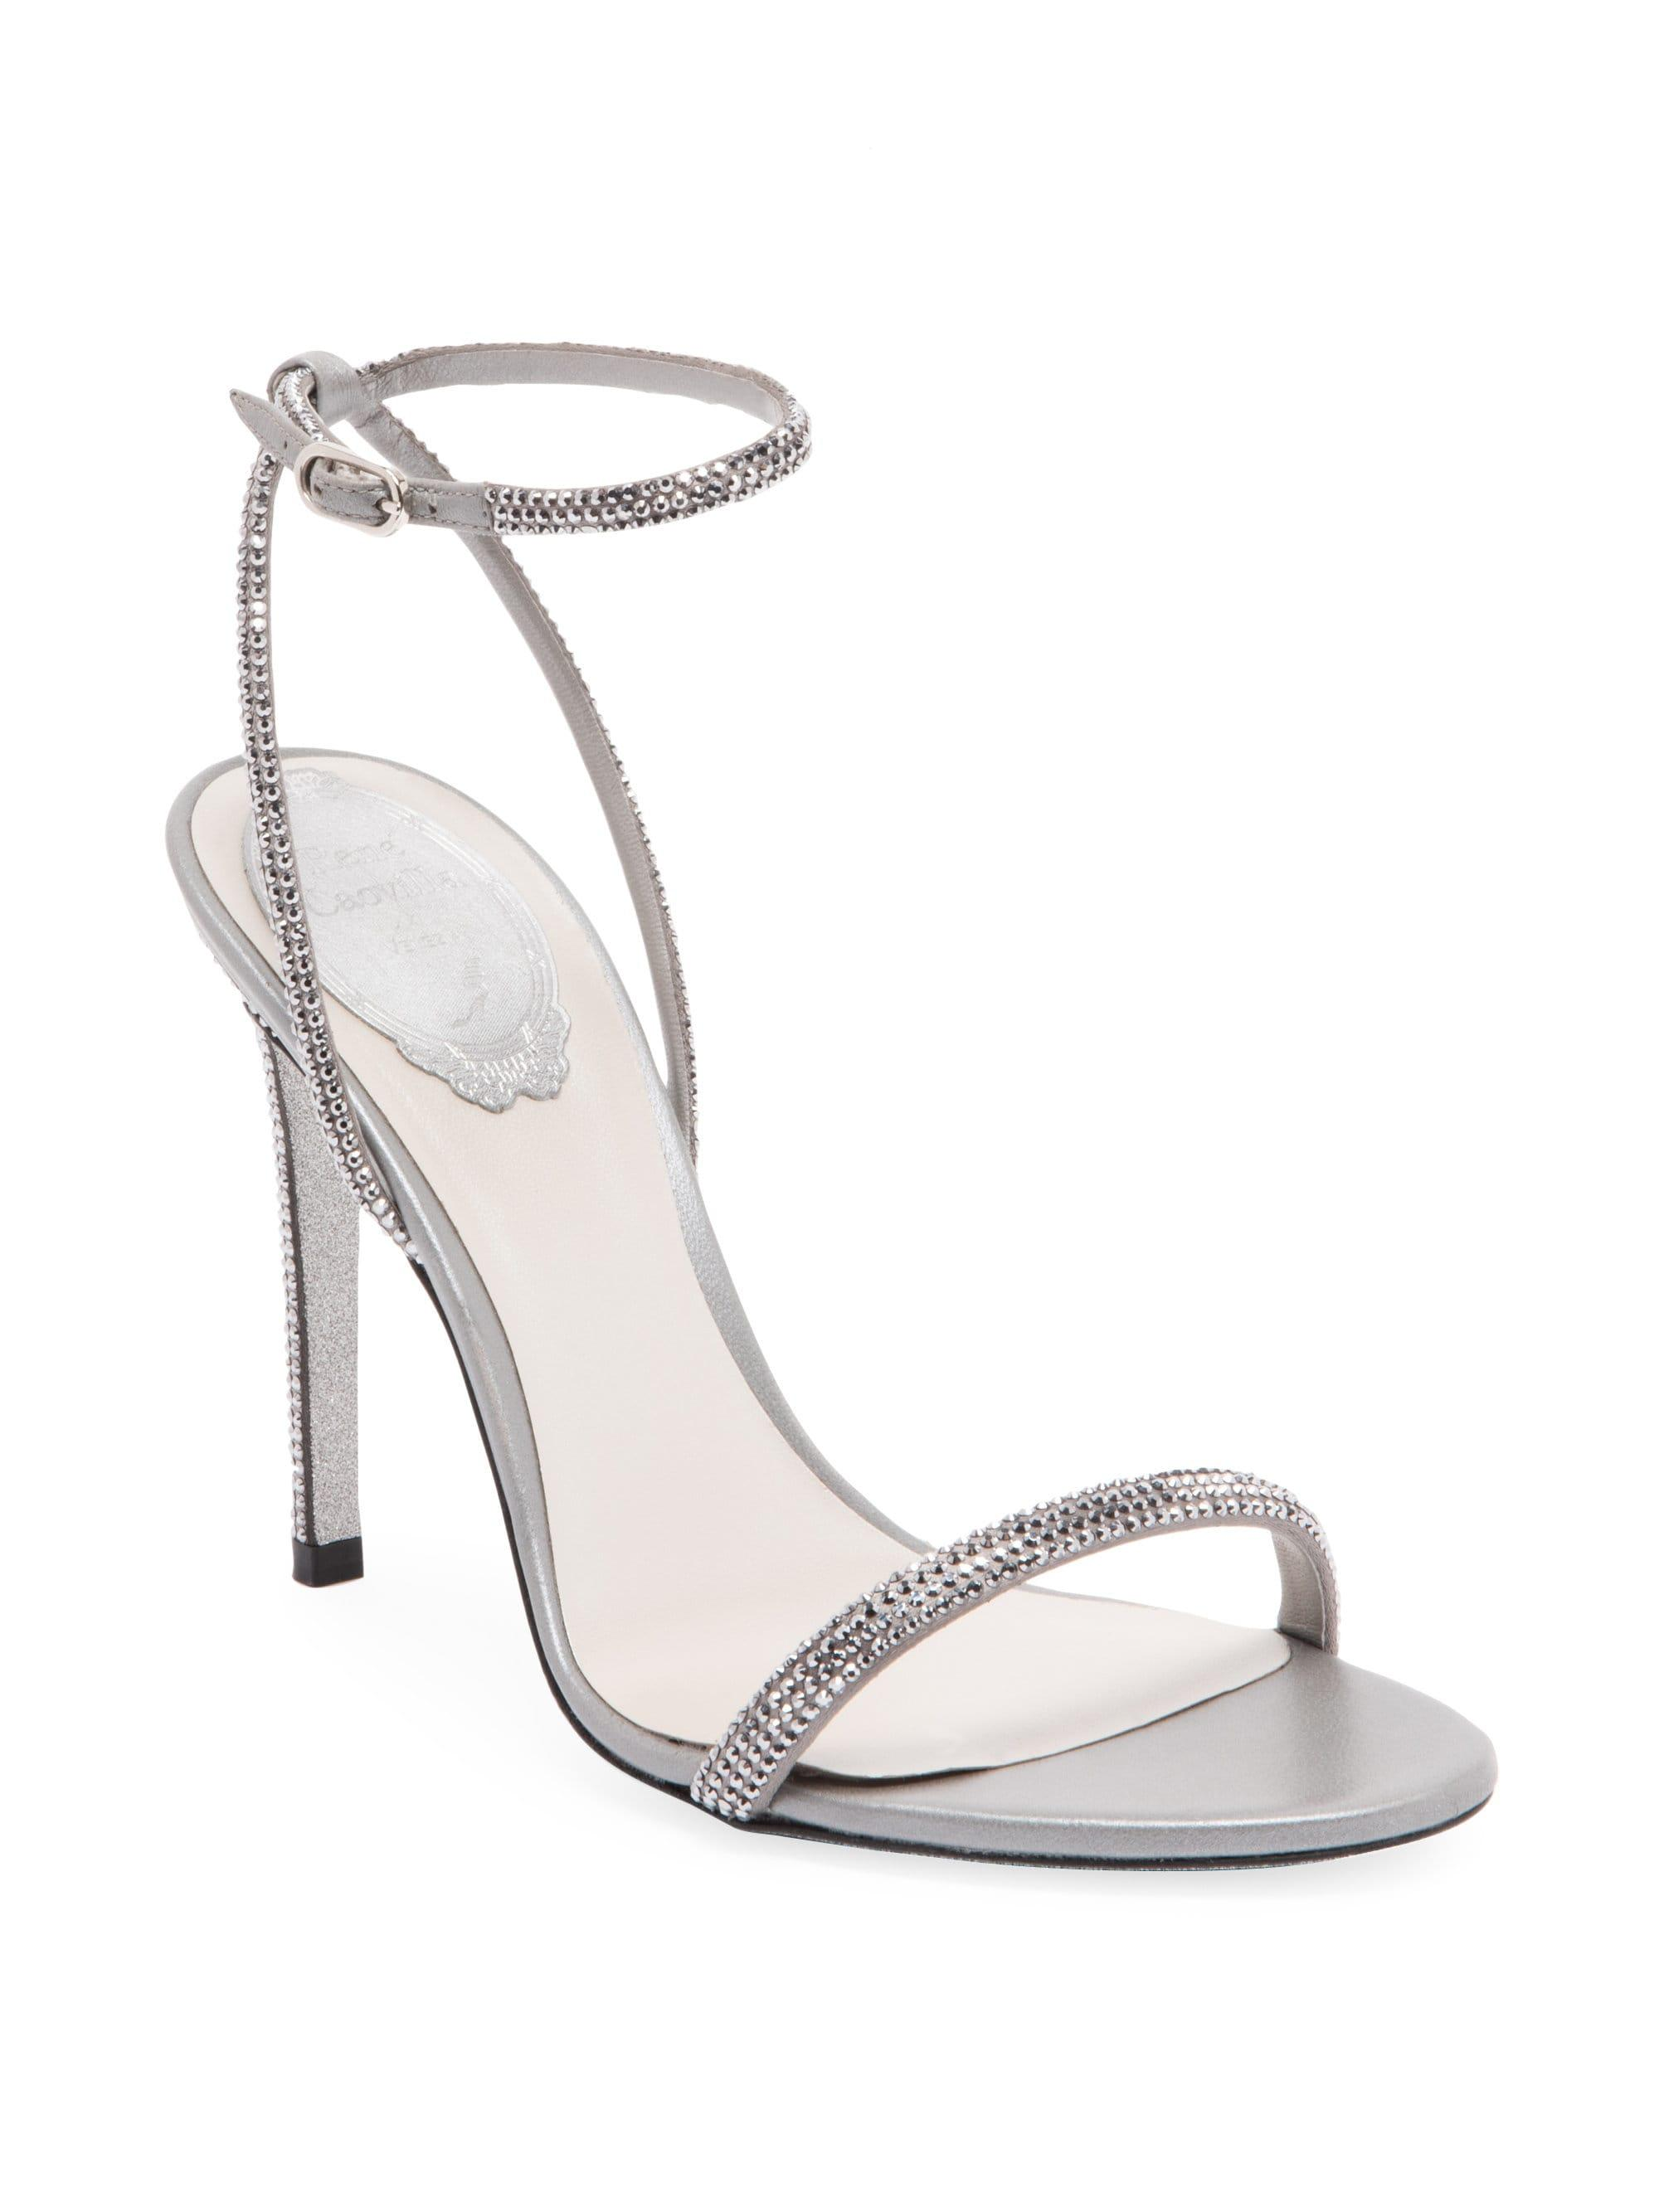 c8a3644d7 Lyst - Rene Caovilla Crystal Embellished Strappy Satin Stiletto ...